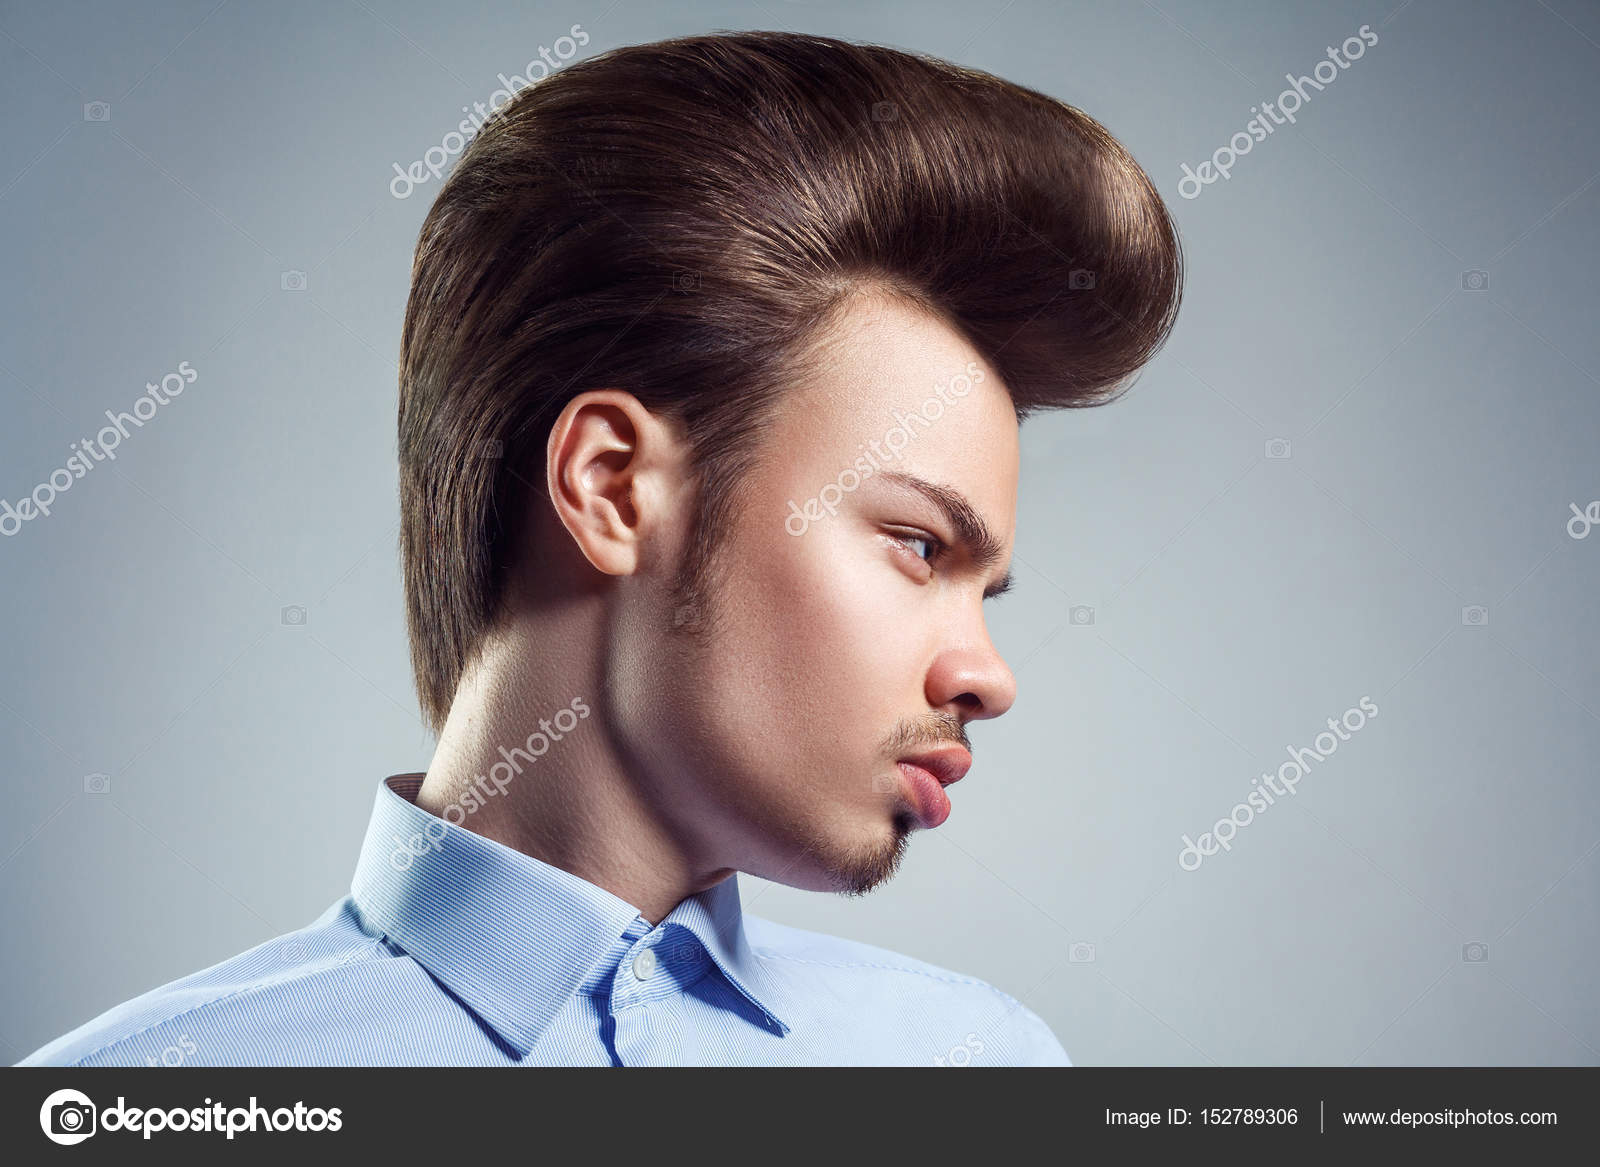 Side View Of Young Man With Retro Classic Pompadour Hairstyle